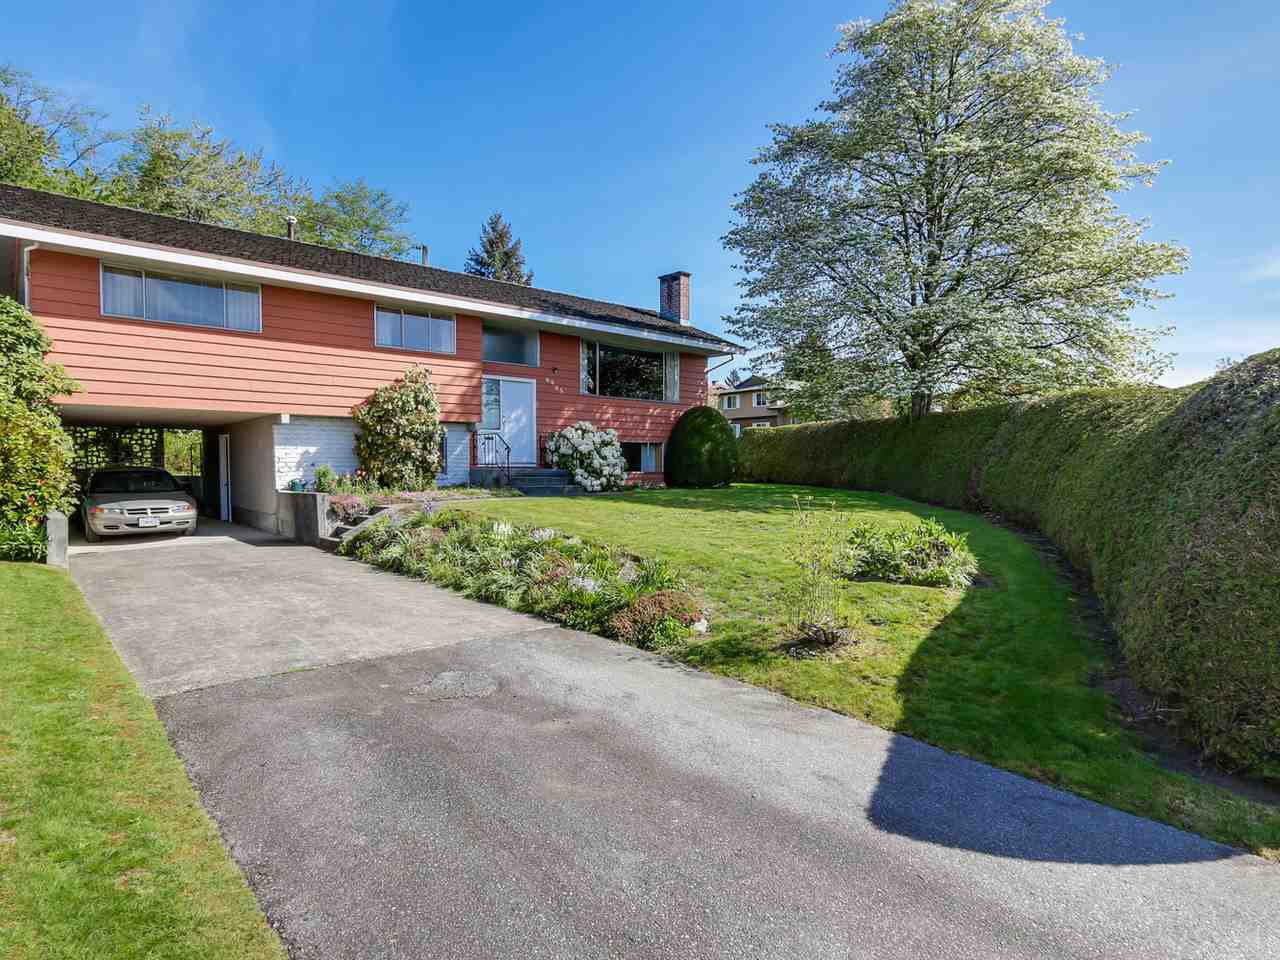 Main Photo: 6905 HYCREST DRIVE in Burnaby: Montecito House for sale (Burnaby North)  : MLS®# R2058508